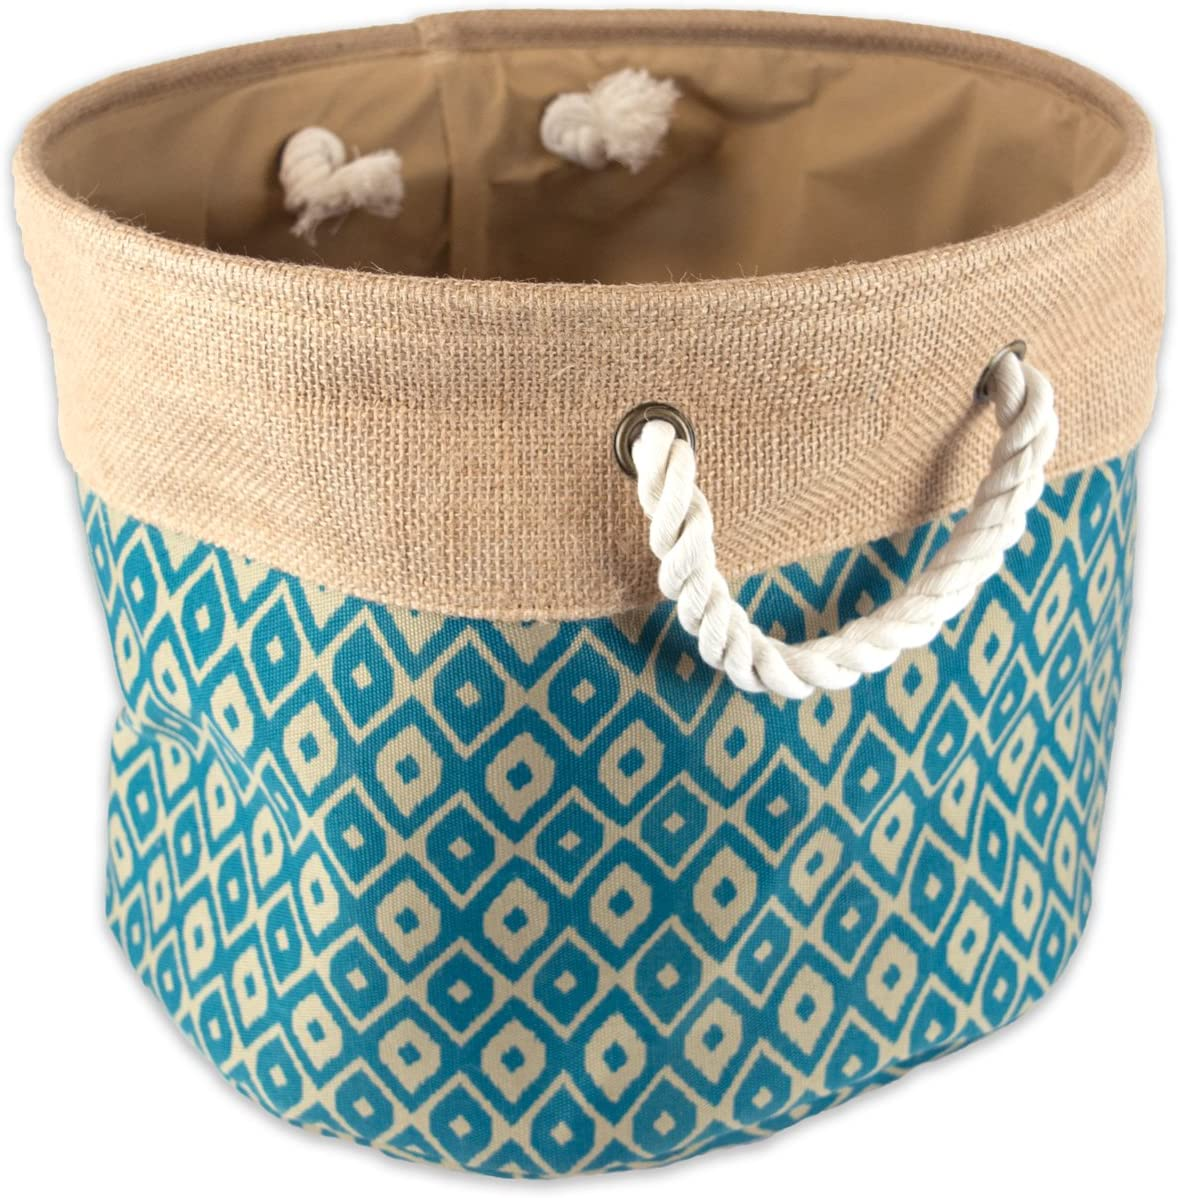 "DII Collapsible Burlap Storage Basket or Bin with Durable Cotton Handles, Home Organizational Solution for Office, Bedroom, Closet, Toys, & Laundry (Medium Round- 15x12""), Teal Ikat"